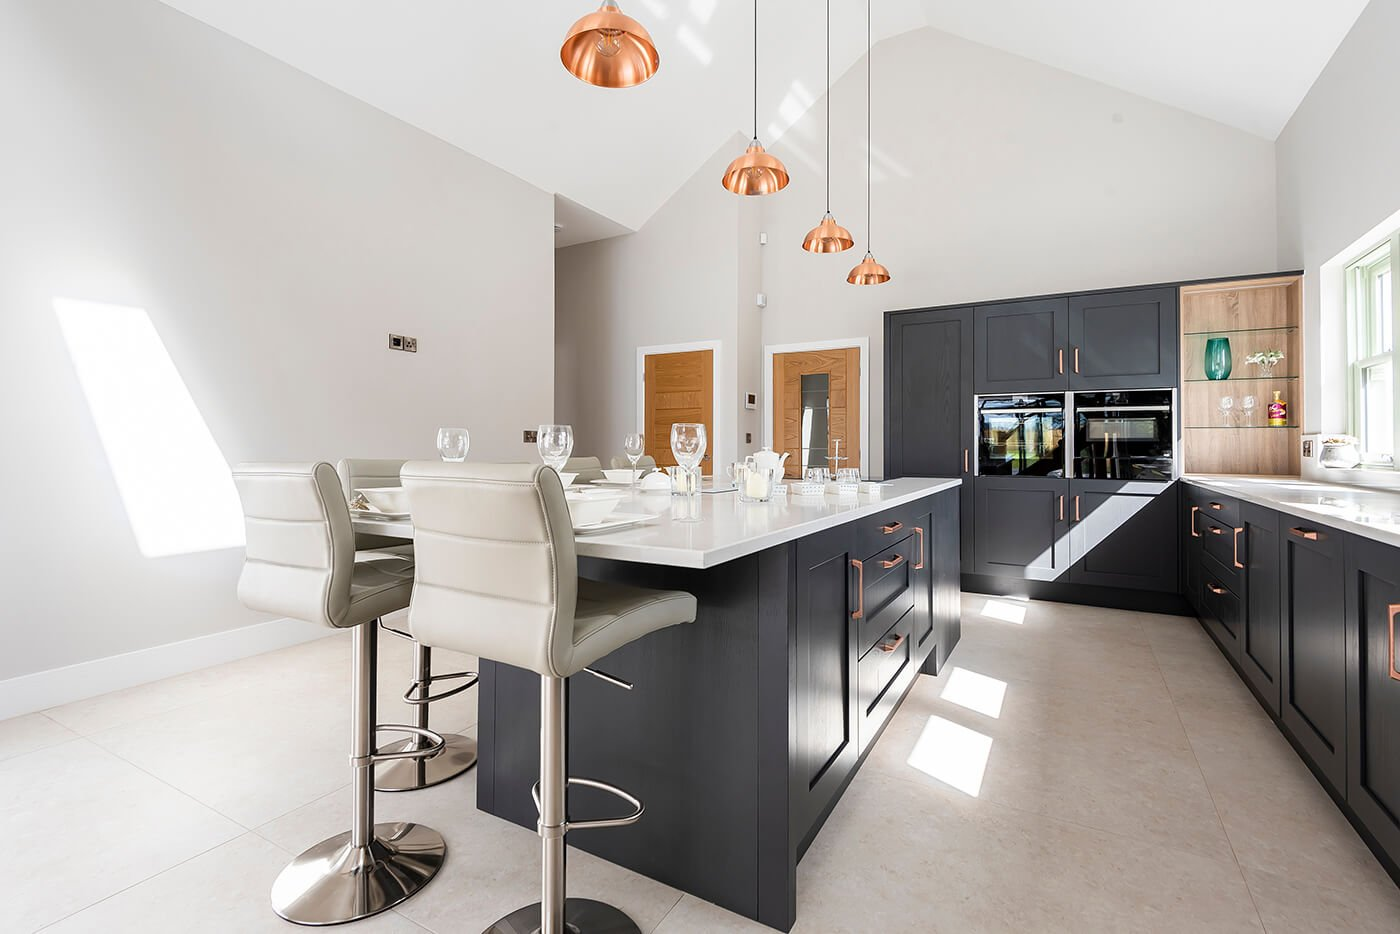 Harmby Homes - Barley Court, Staveley The Brocket kitchen